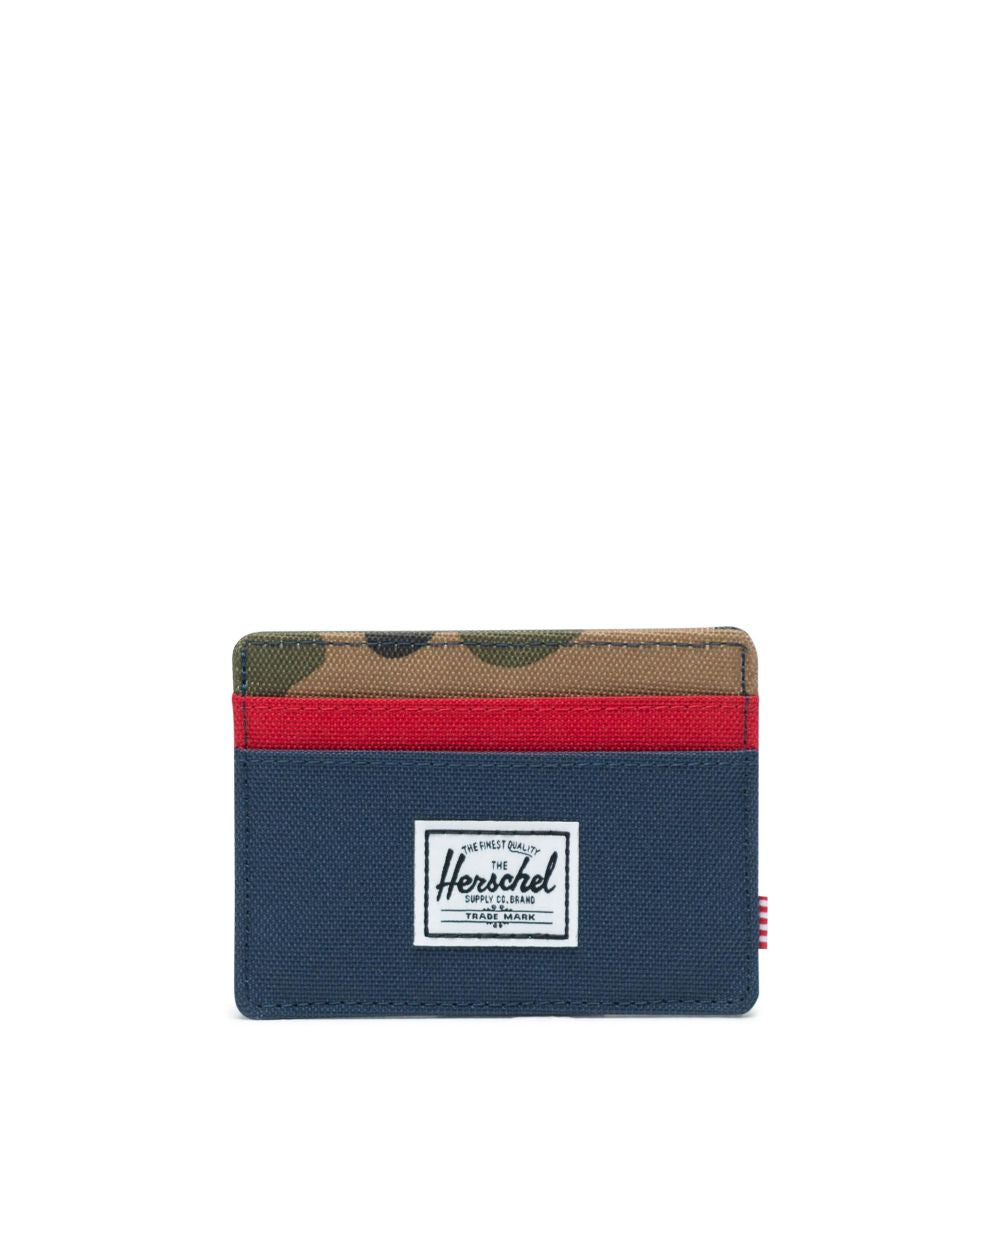 Charlie+ Wallet (Navy/Red/Camo)